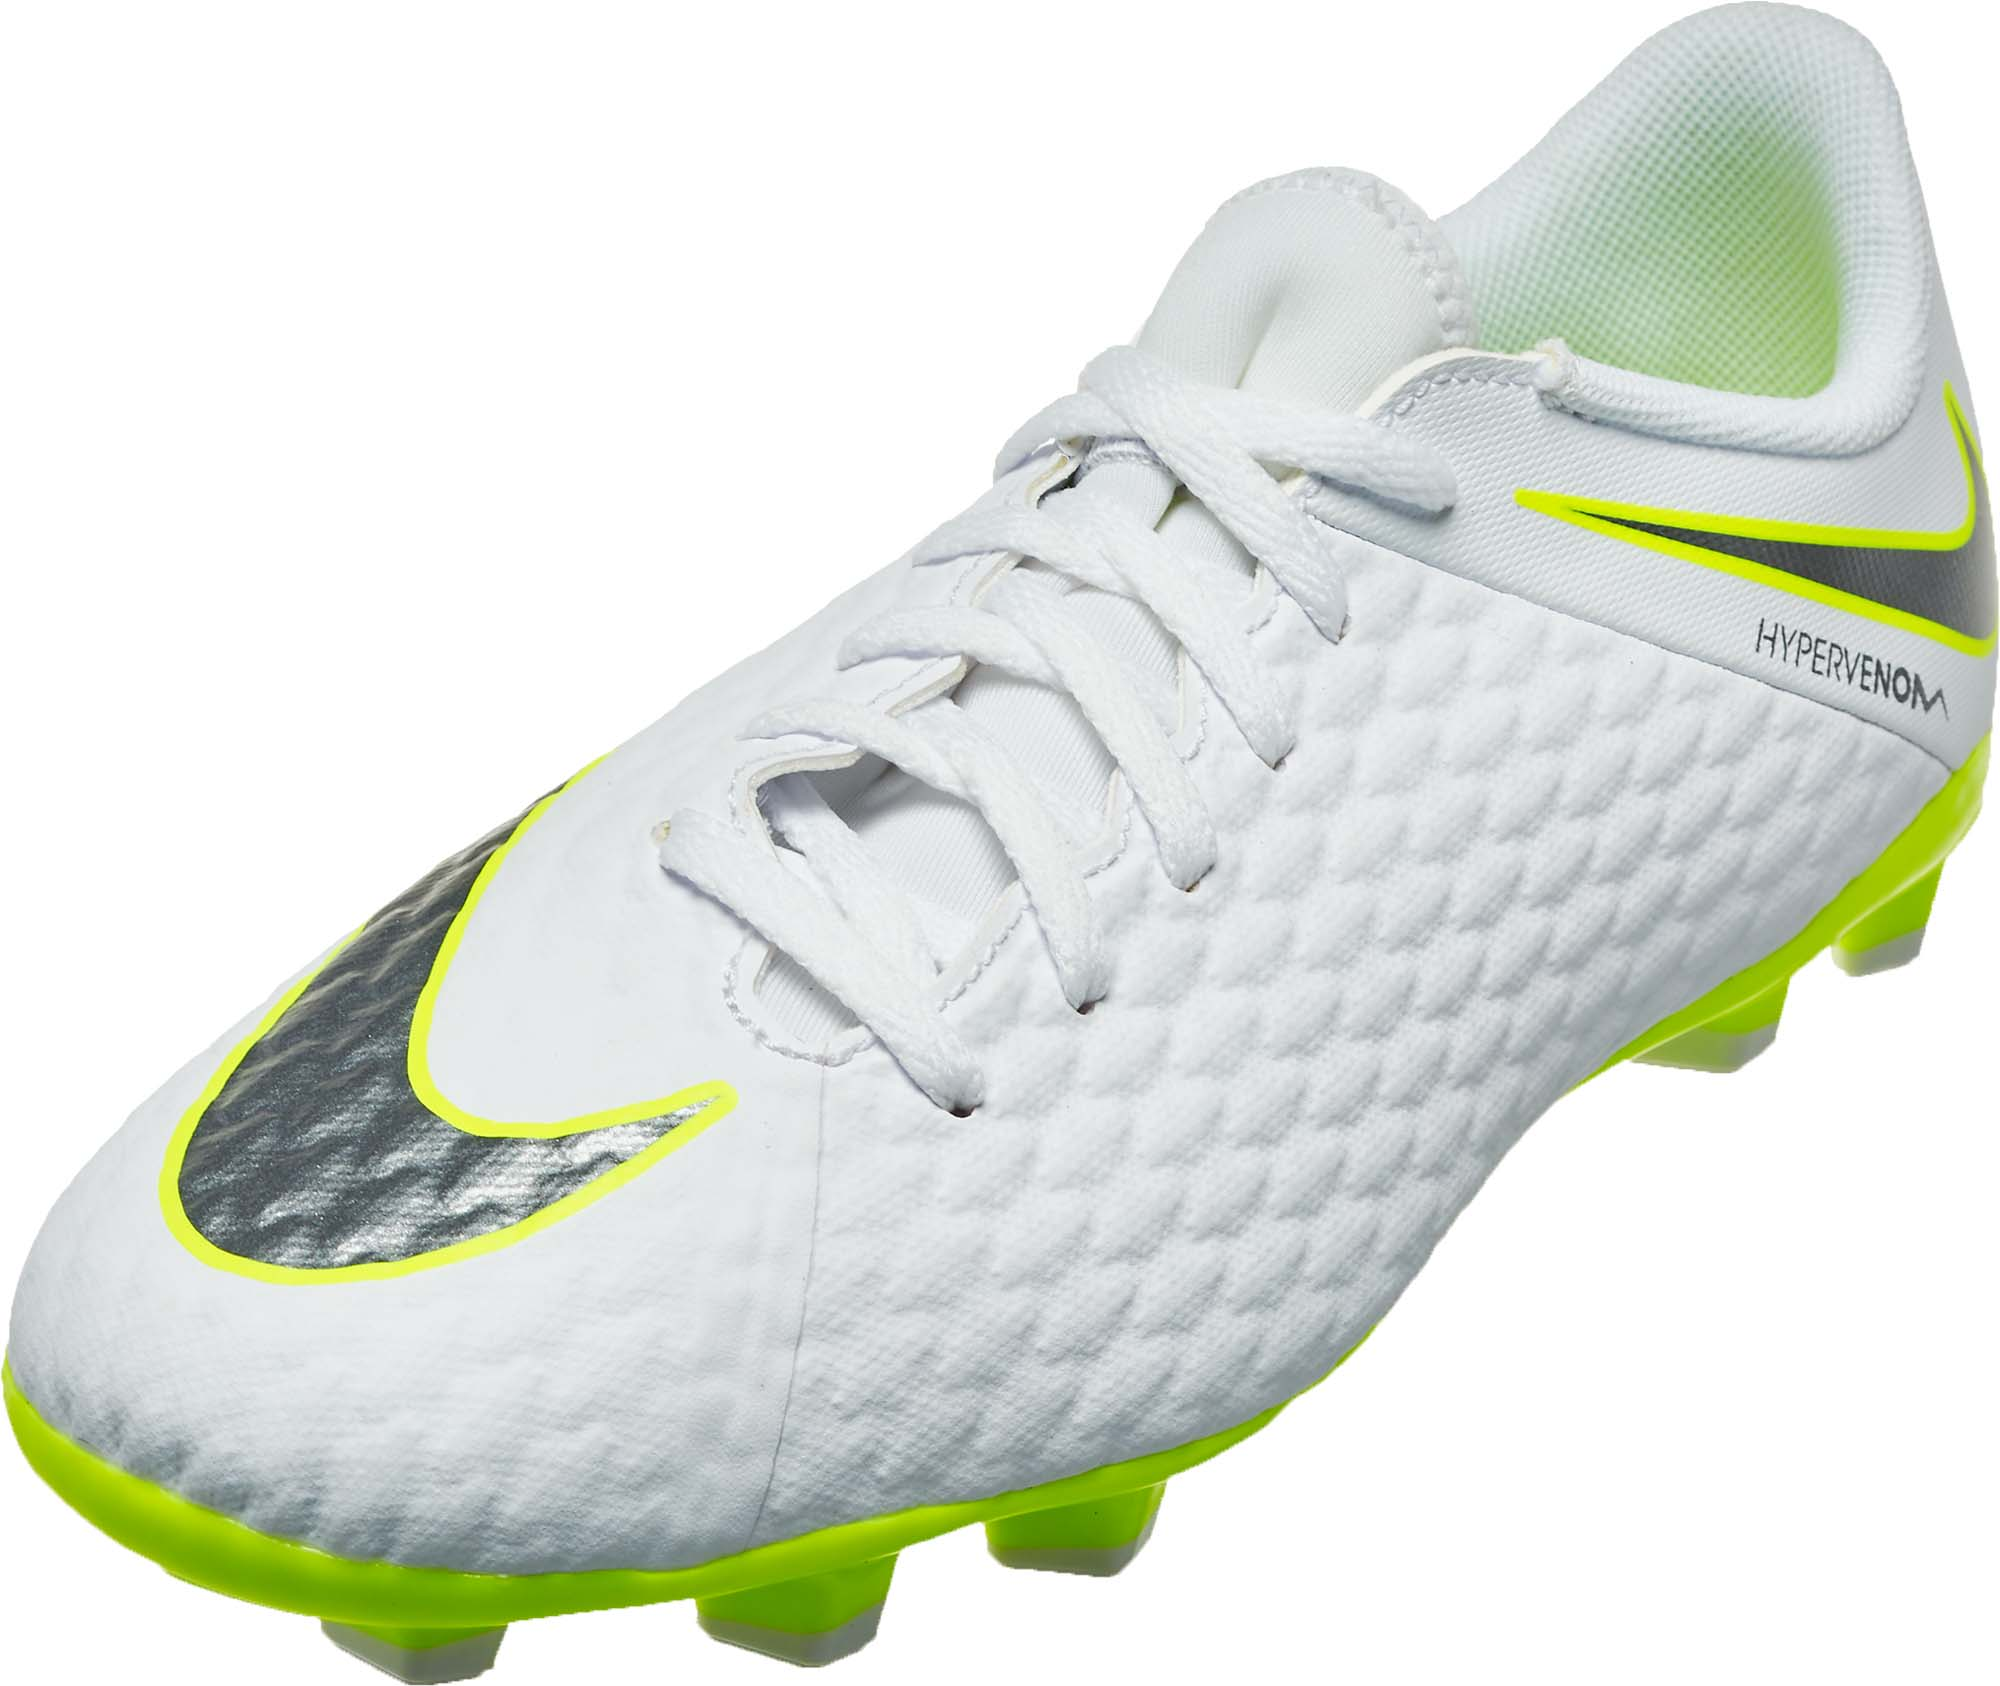 timeless design 7b6e9 62118 Nike Hypervenom Phantom 3 Academy FG – Youth – White/Volt